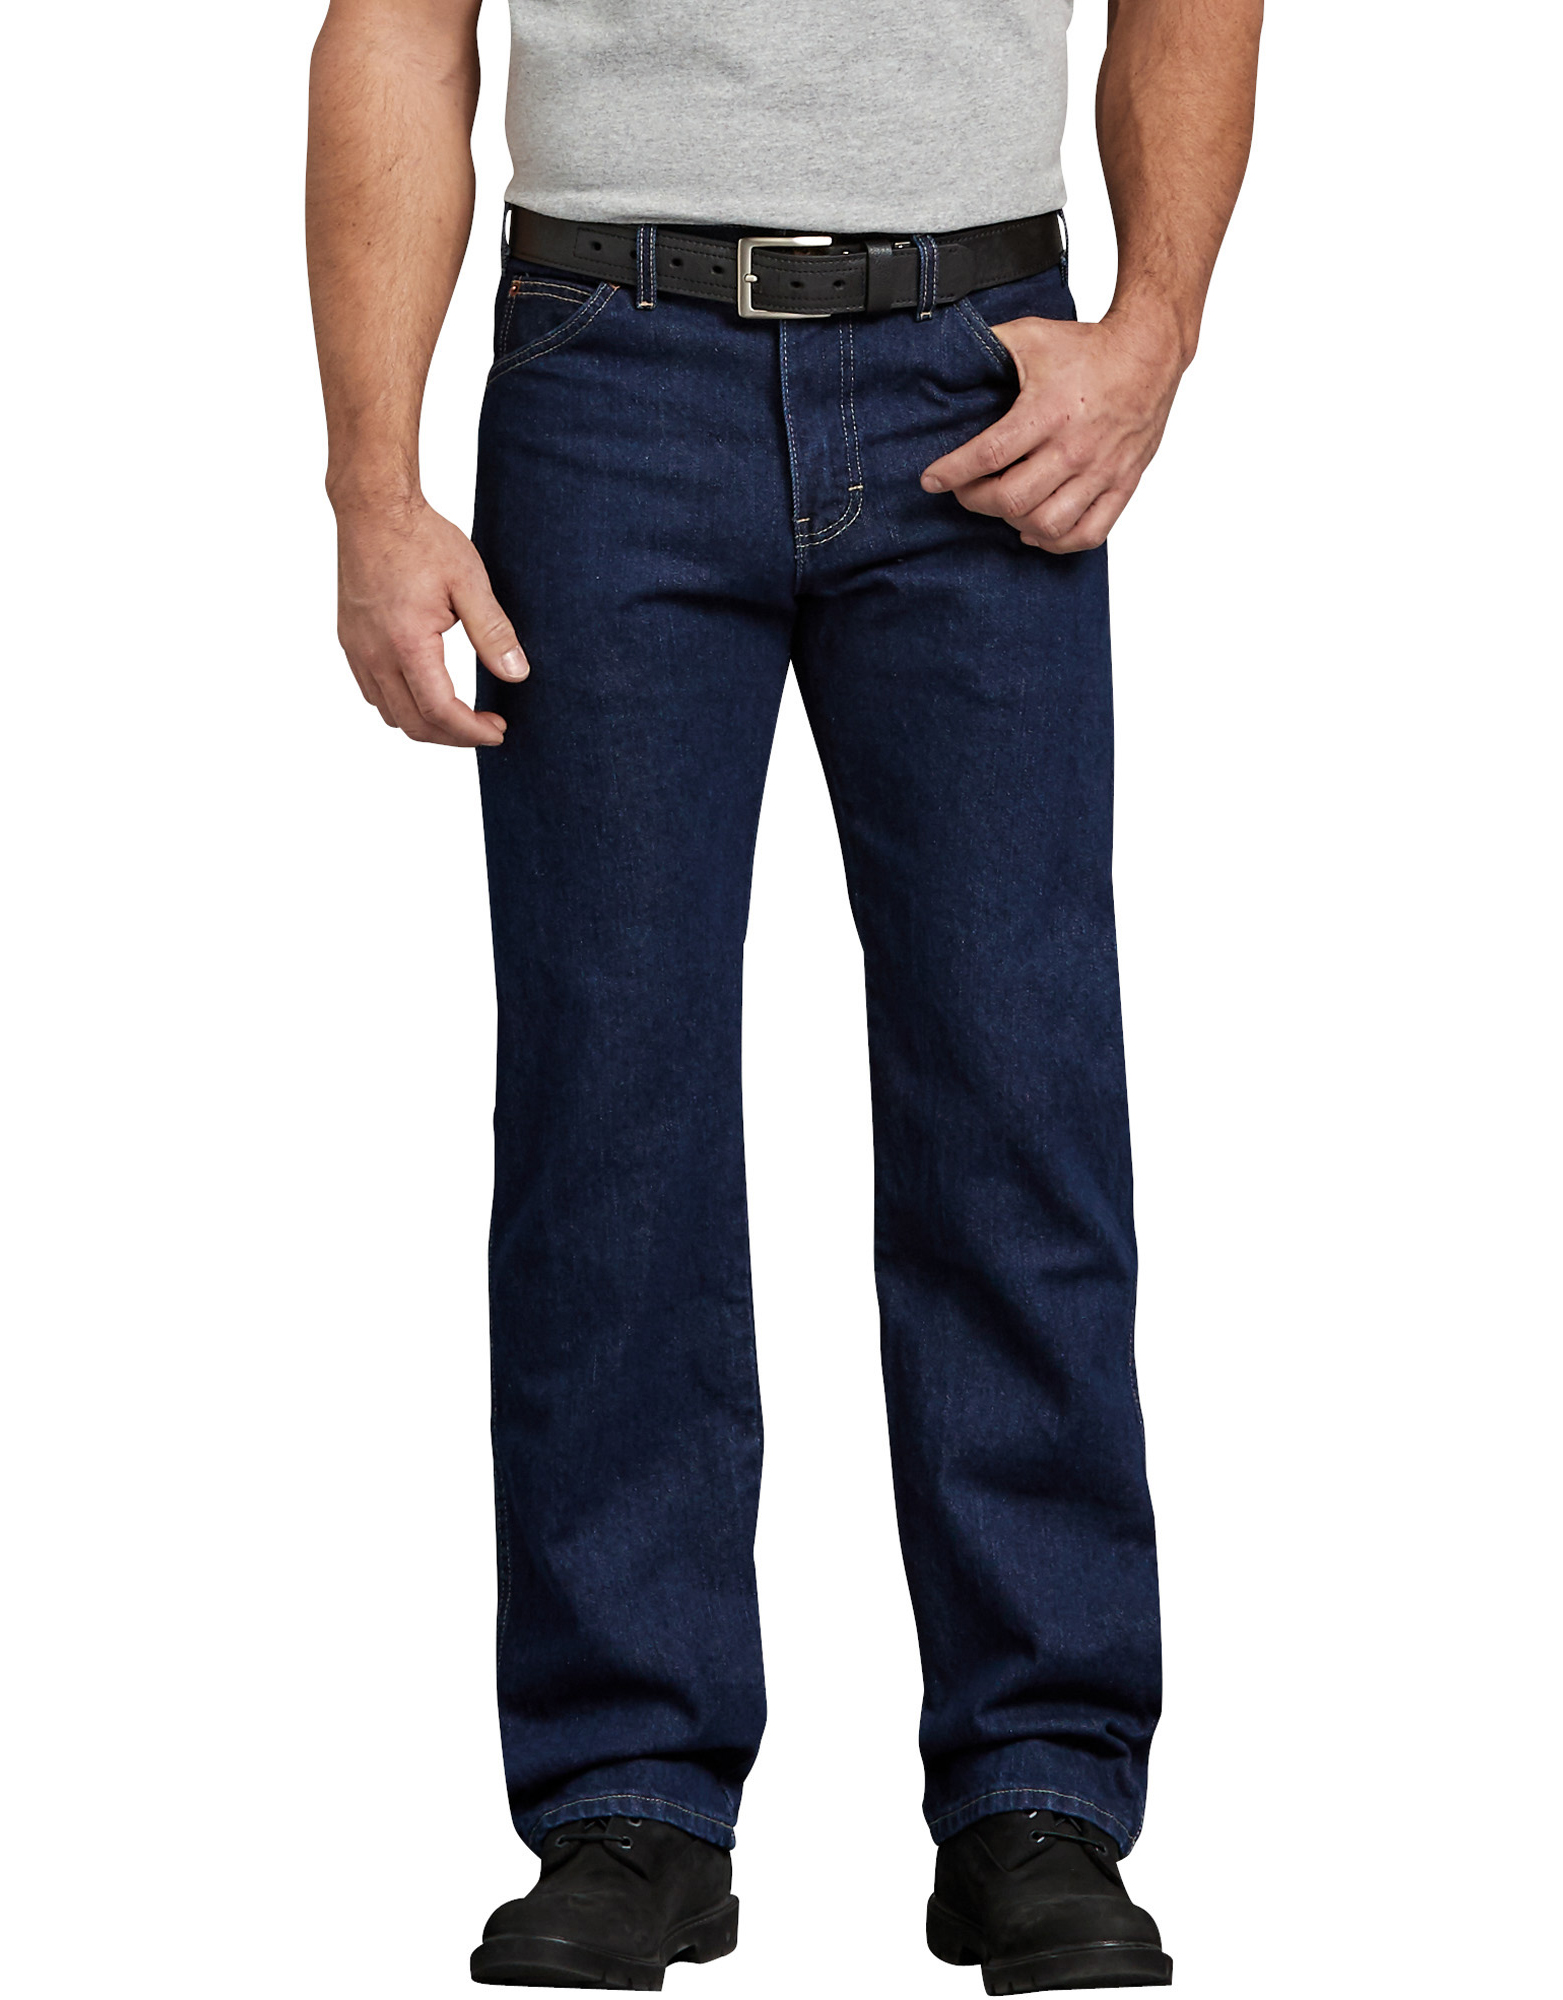 Regular Straight Fit 6-Pocket Denim Jeans - Rinsed Indigo Blue (RNB)